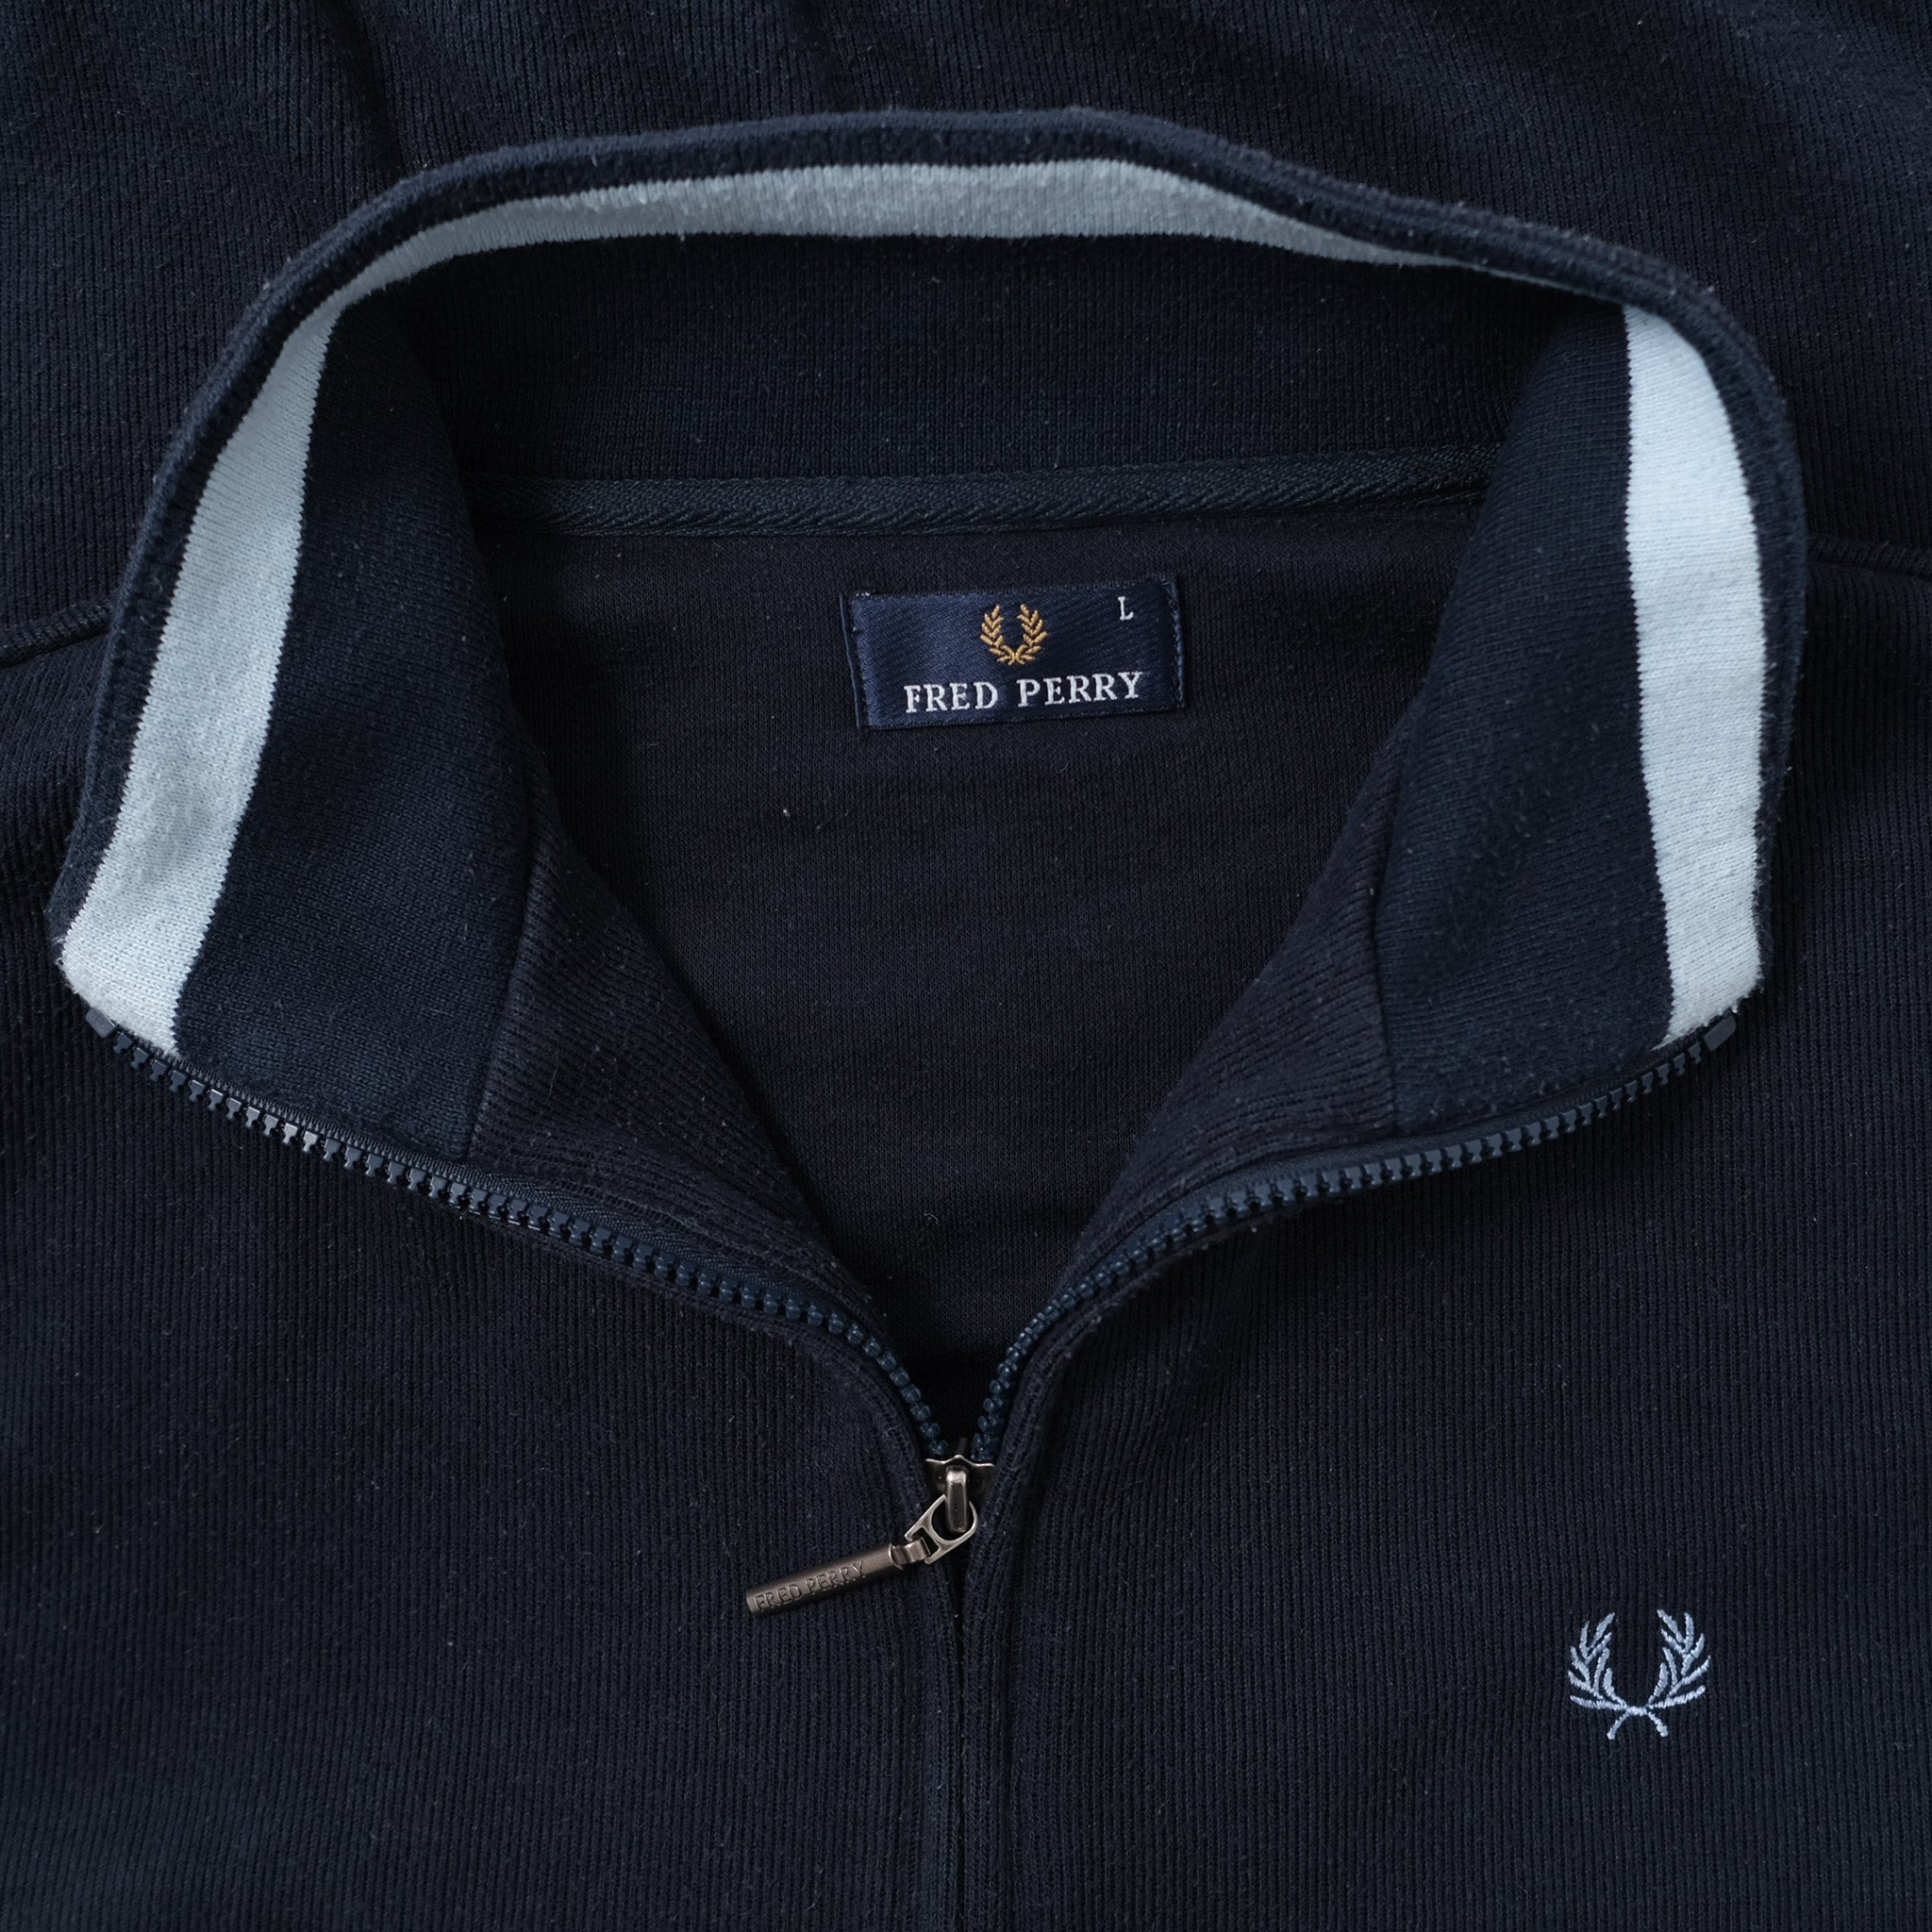 Vintage Fred Perry Sweat Jacket Large